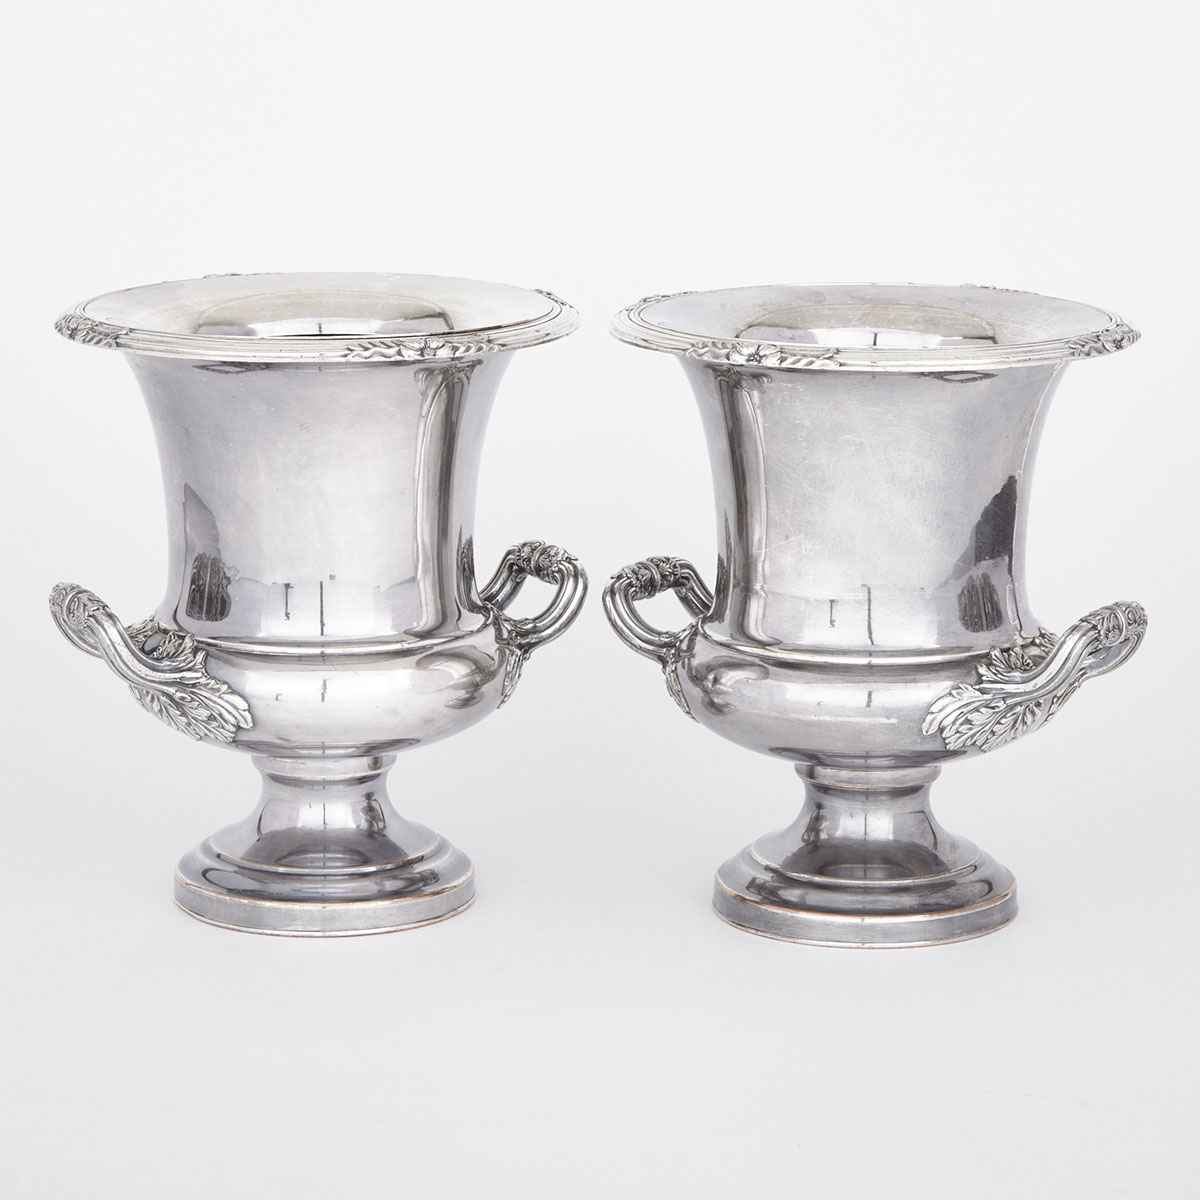 Pair of Old Sheffield Plate Wine Coolers & Liners, Waterhouse, Hatfield & Co., c.1835